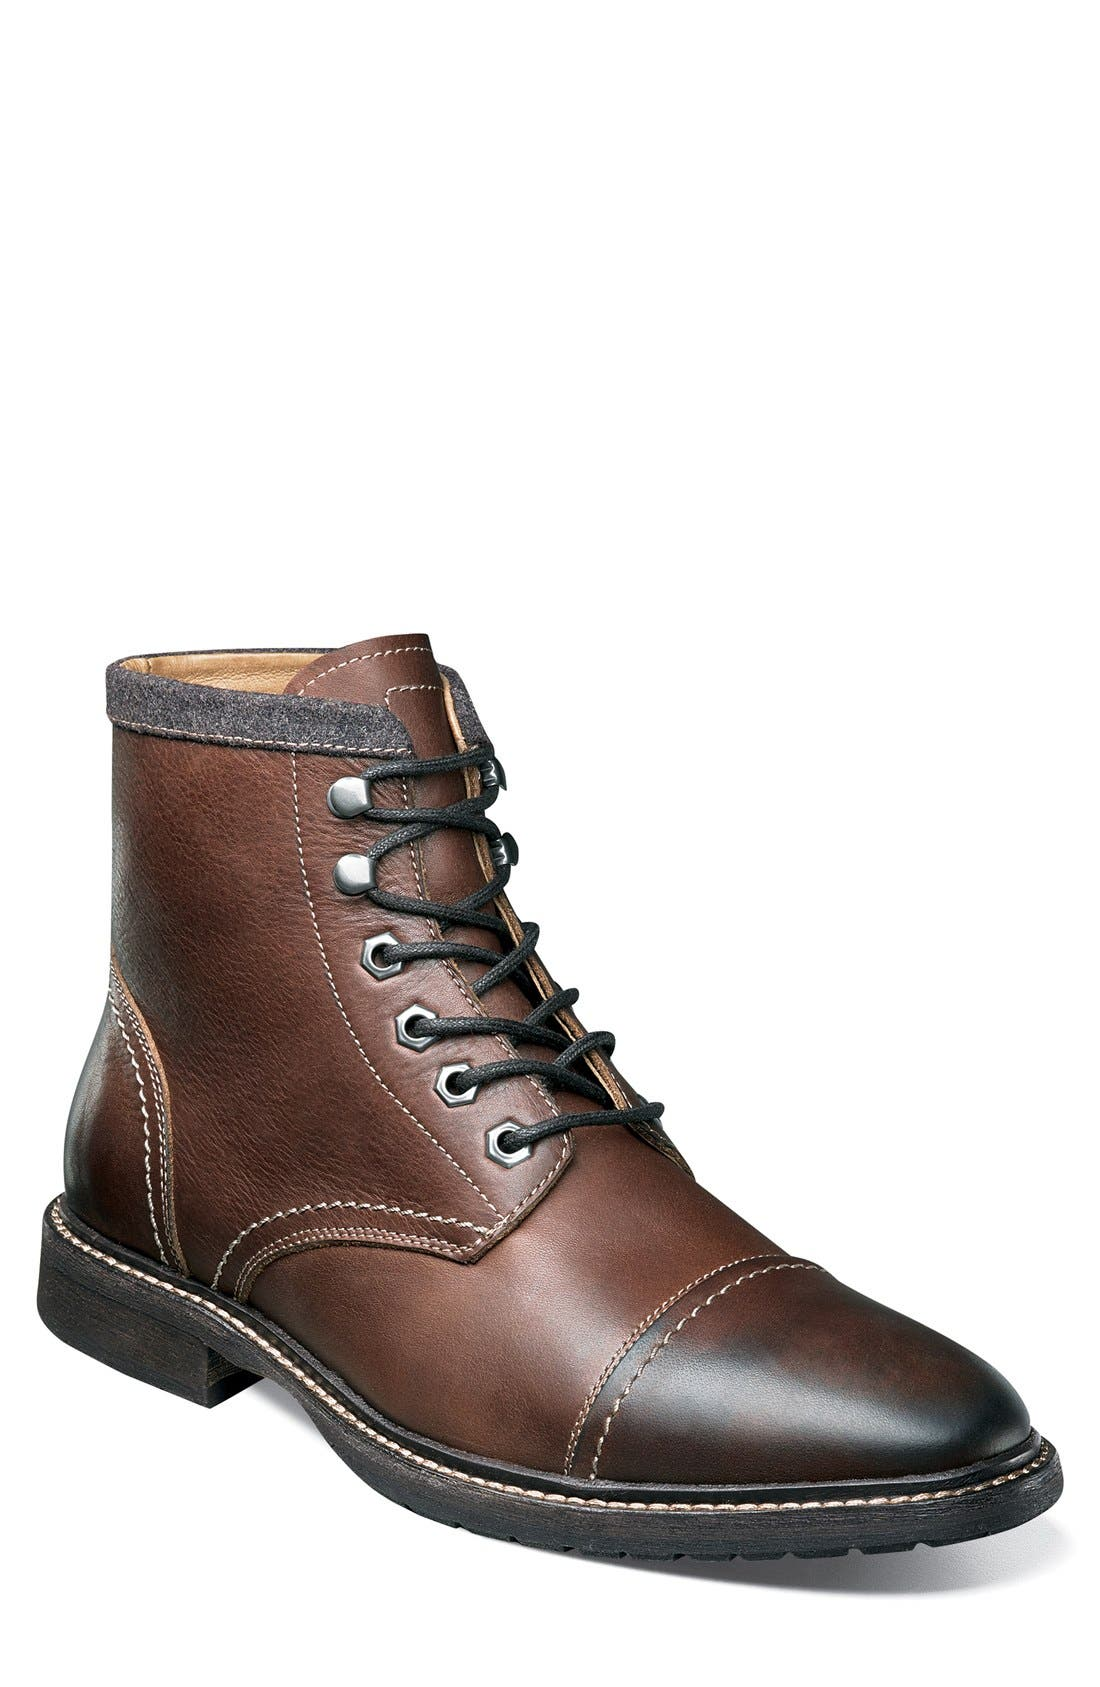 'Indie' Cap Toe Boot,                         Main,                         color, Chestnut Leather